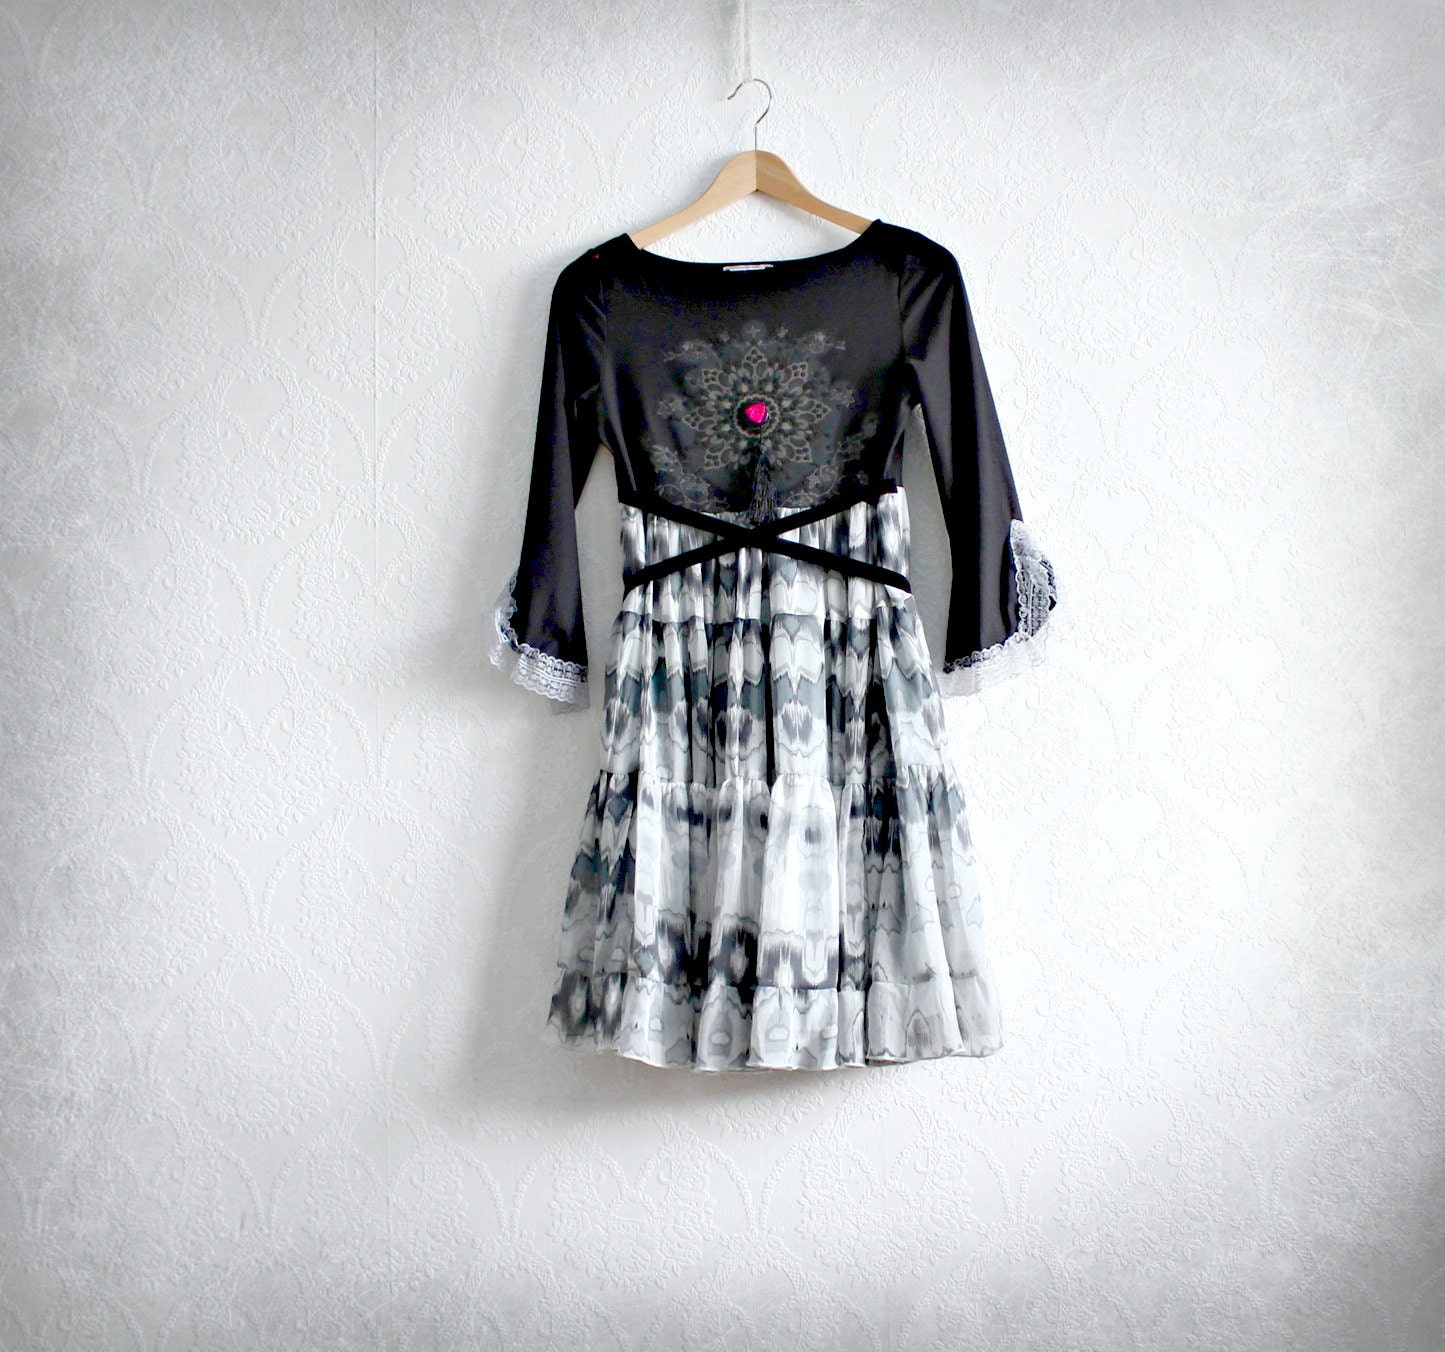 clothi ng tiered skirt eco friendly gypsy clothes women black dress